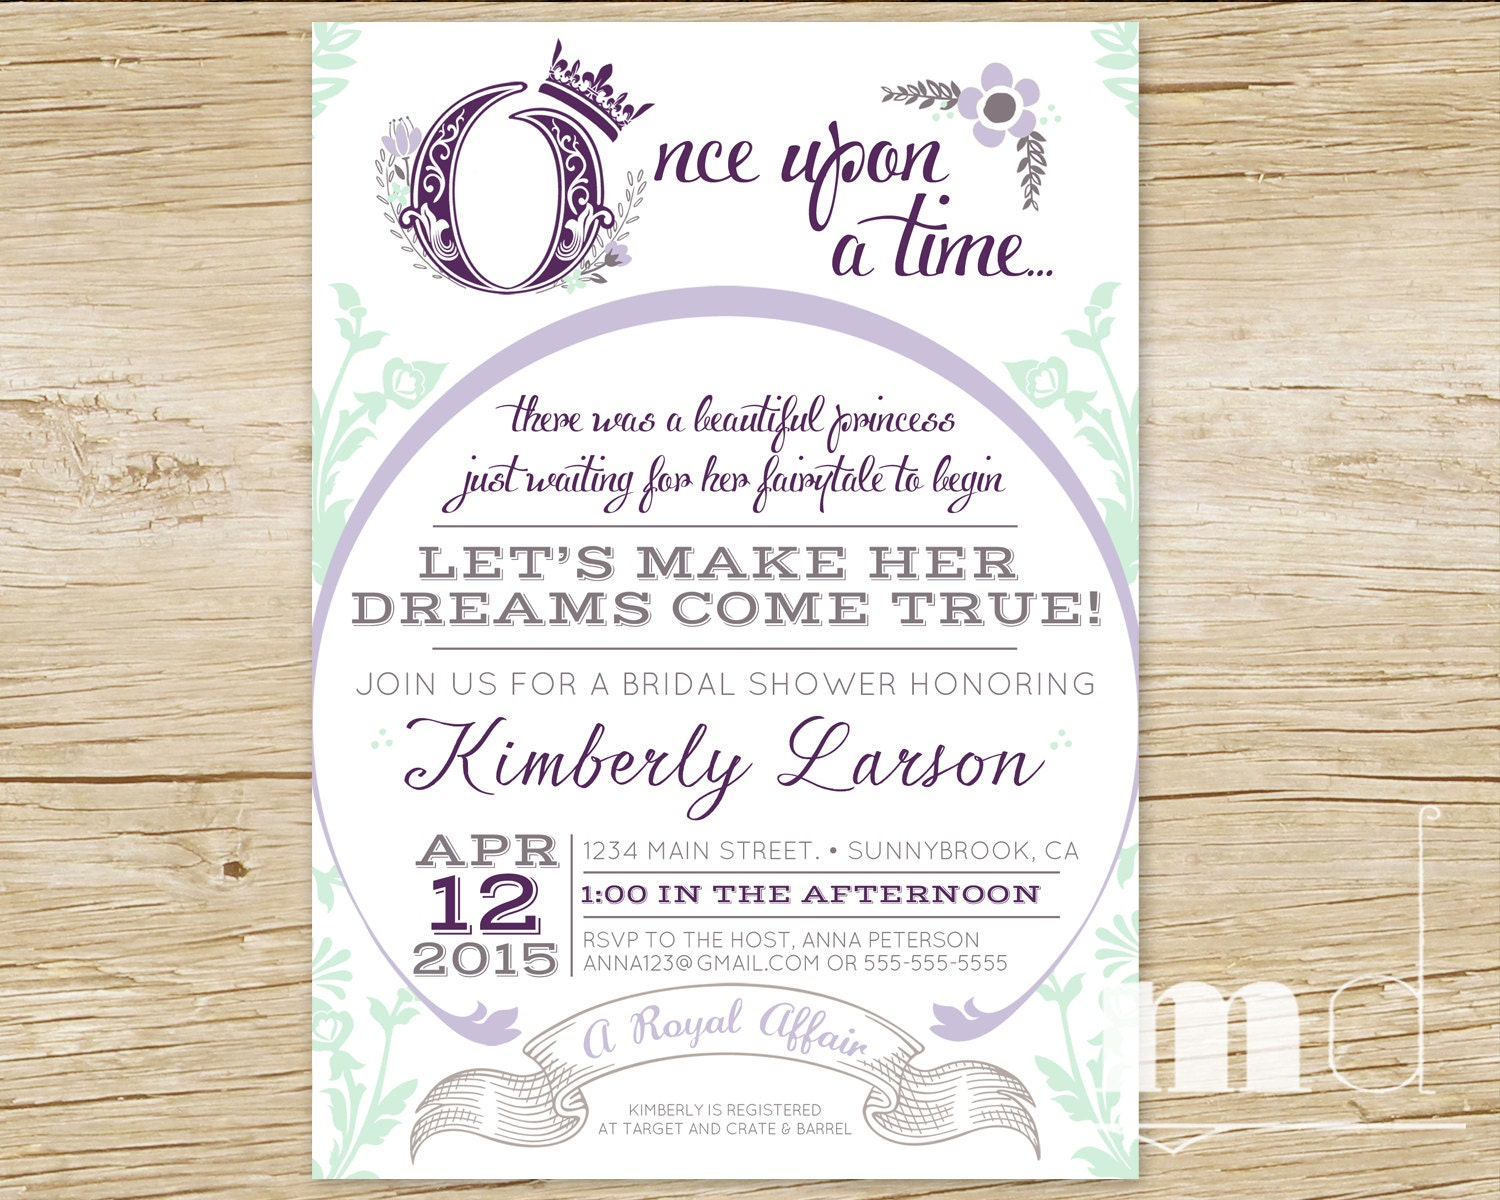 Once Upon A Time Bridal Shower Invitation Fairytale Bridal